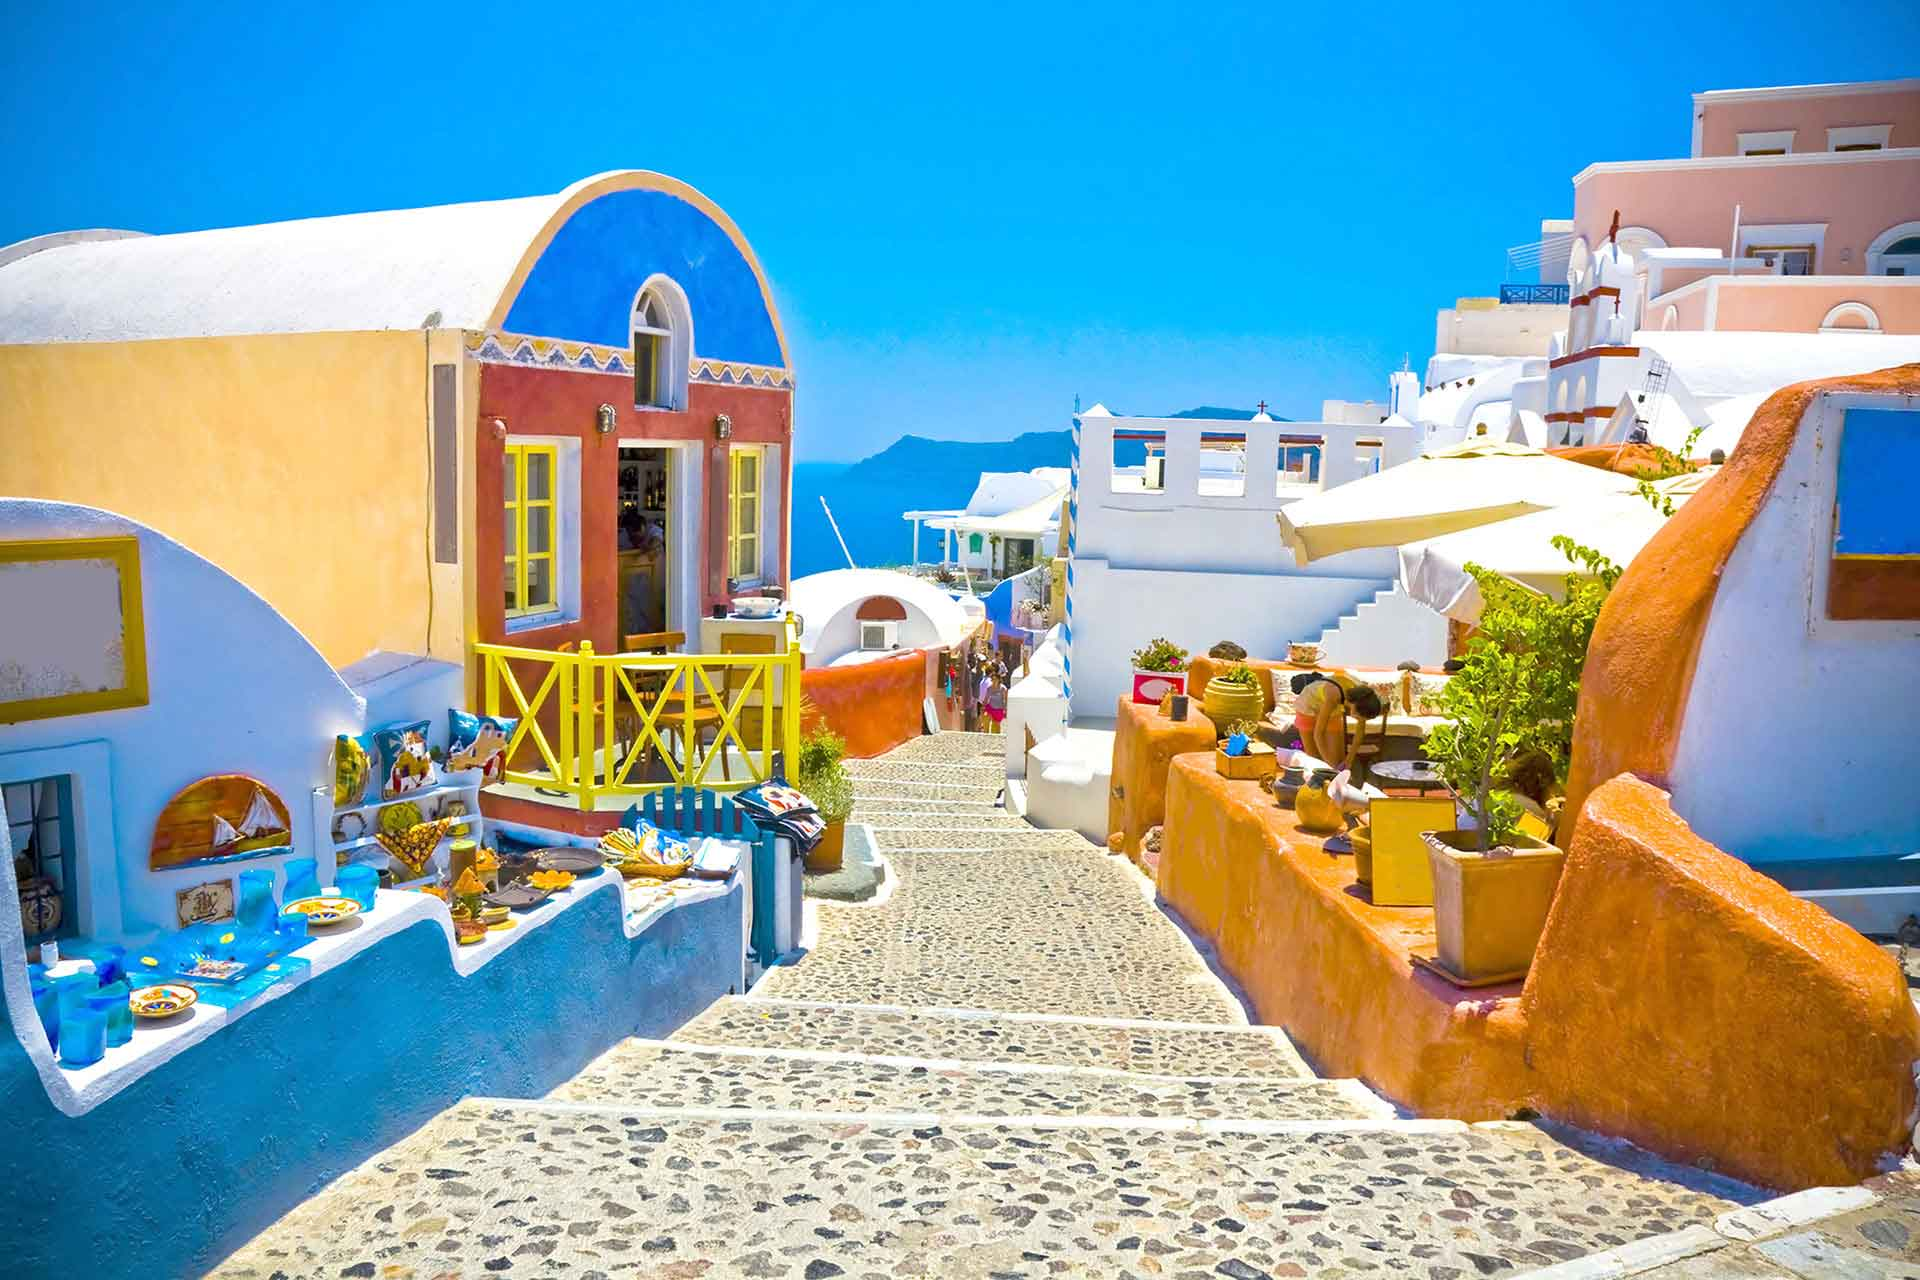 Santorini Wallpapers PC F76R34Y Wallperiocom 1920x1280